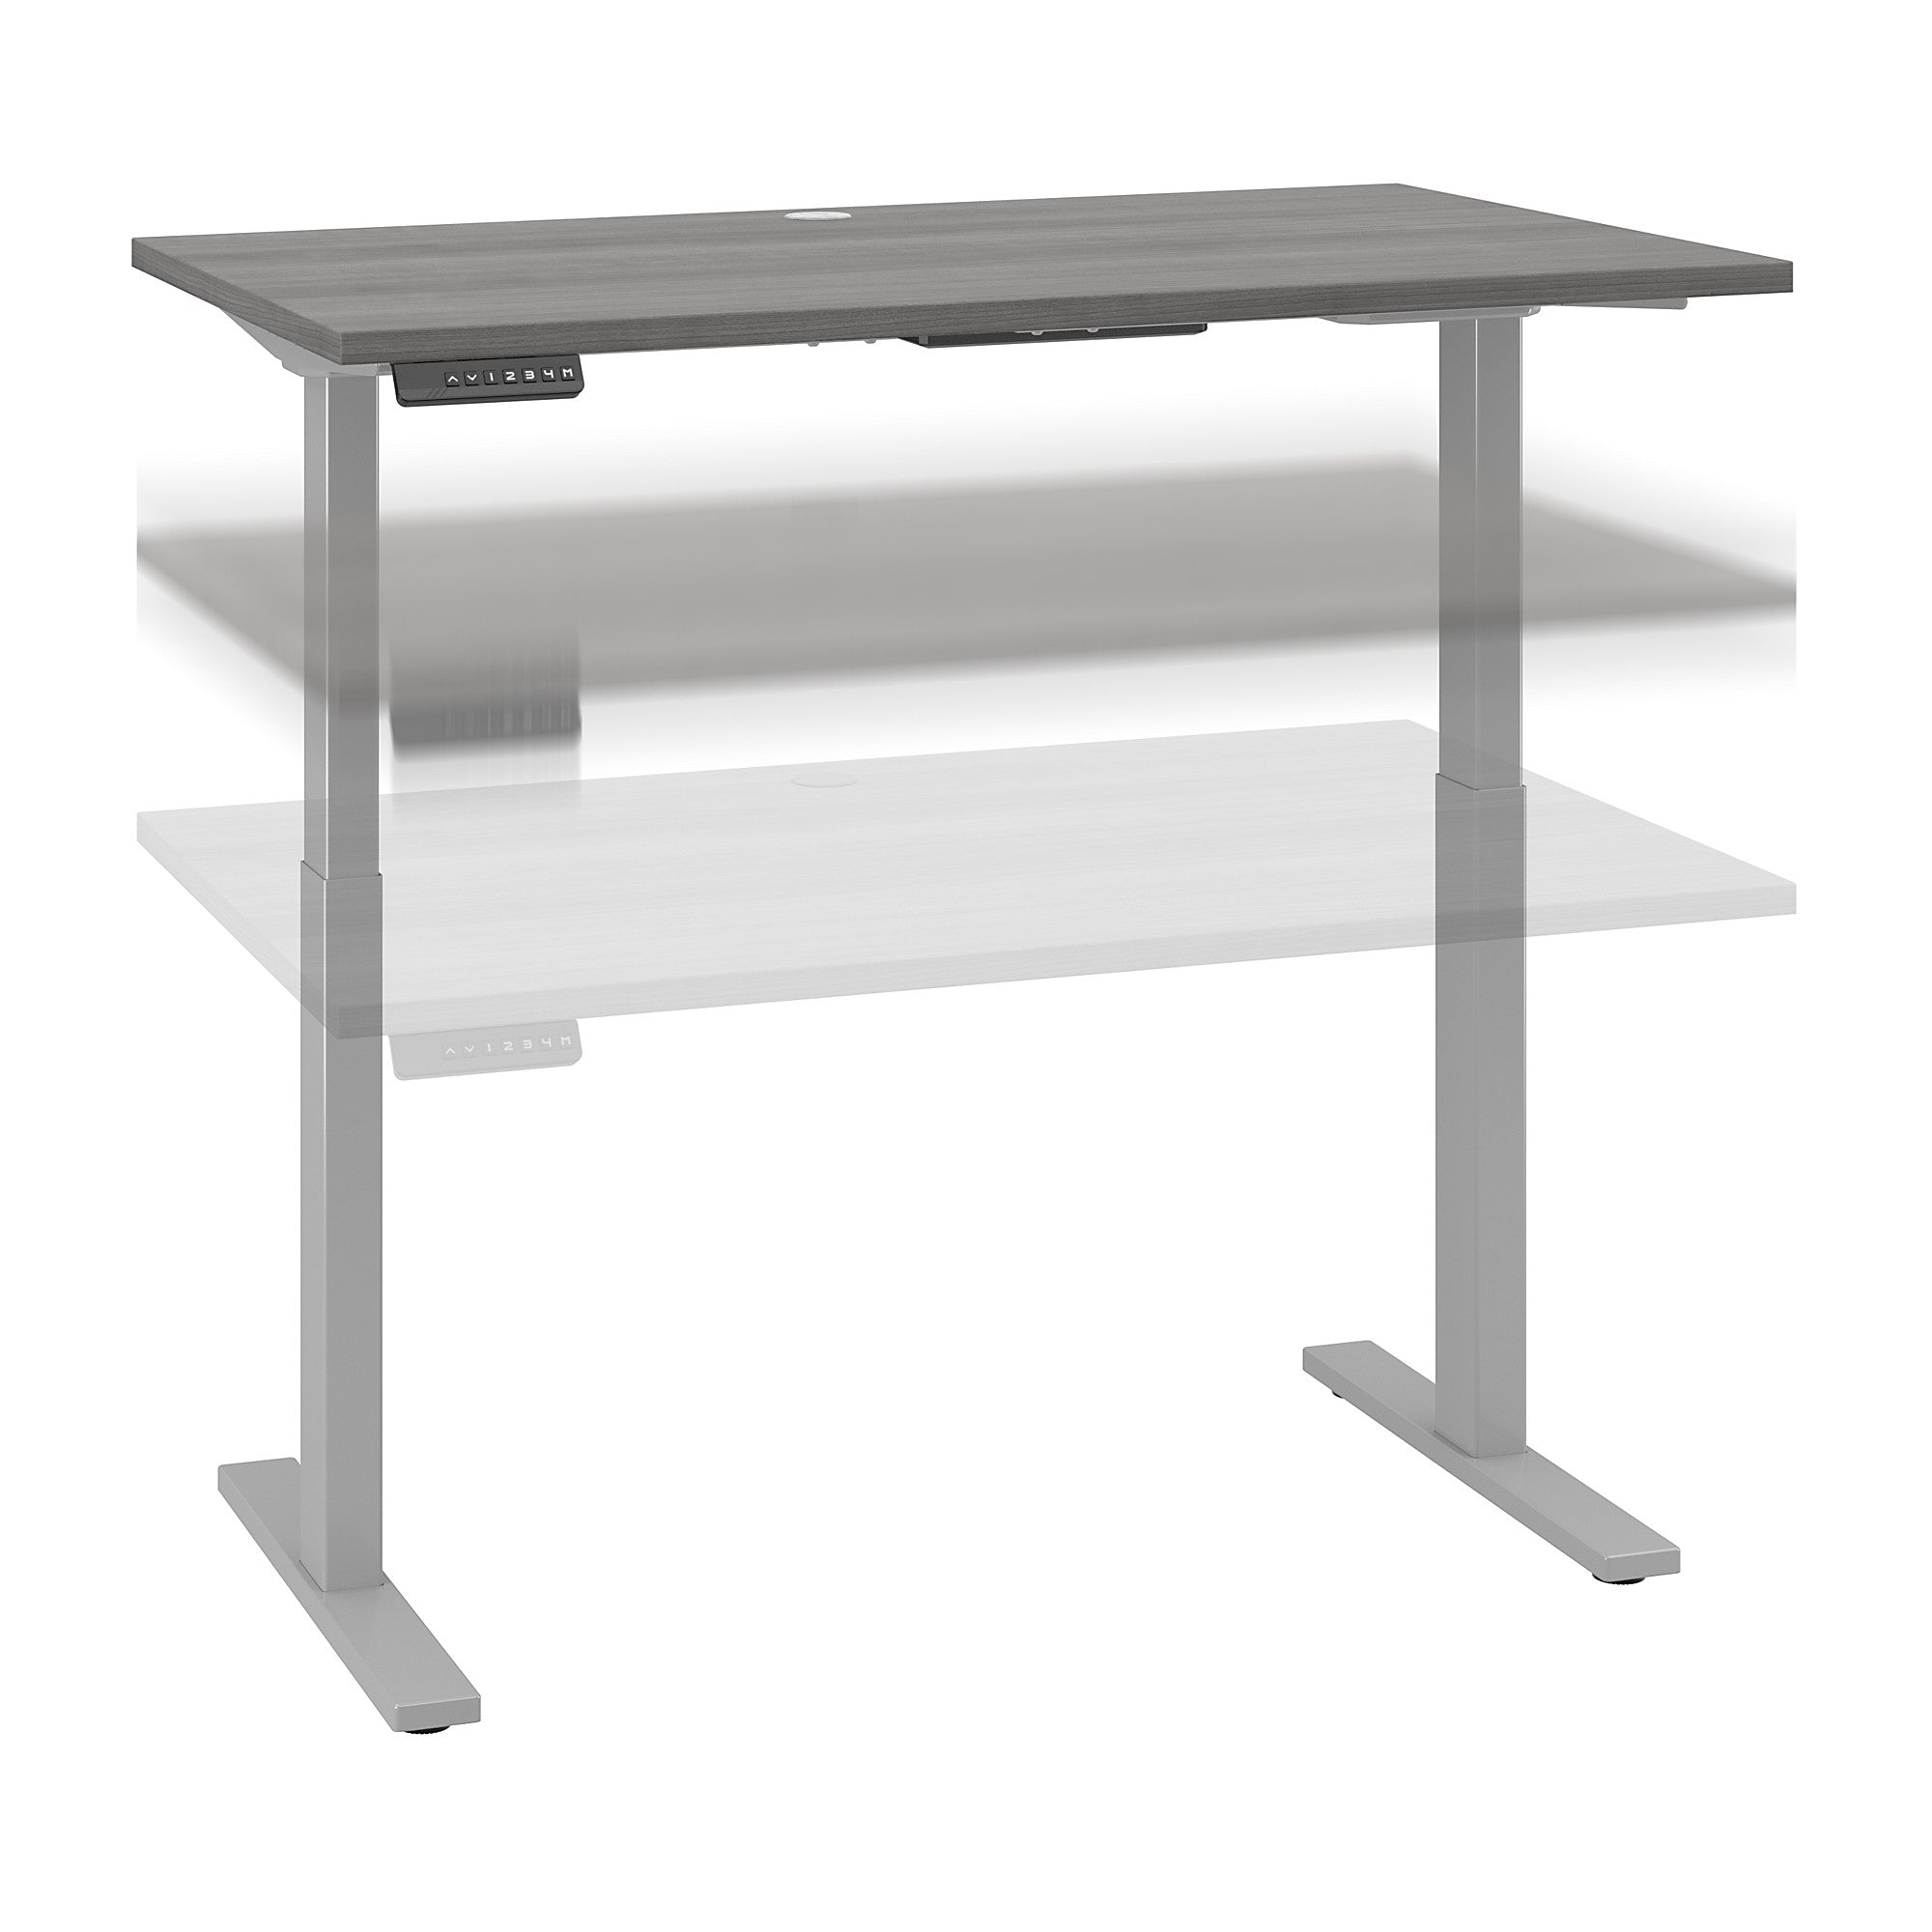 Move 60 Series by 48W x 30D Height Adjustable Standing Desk